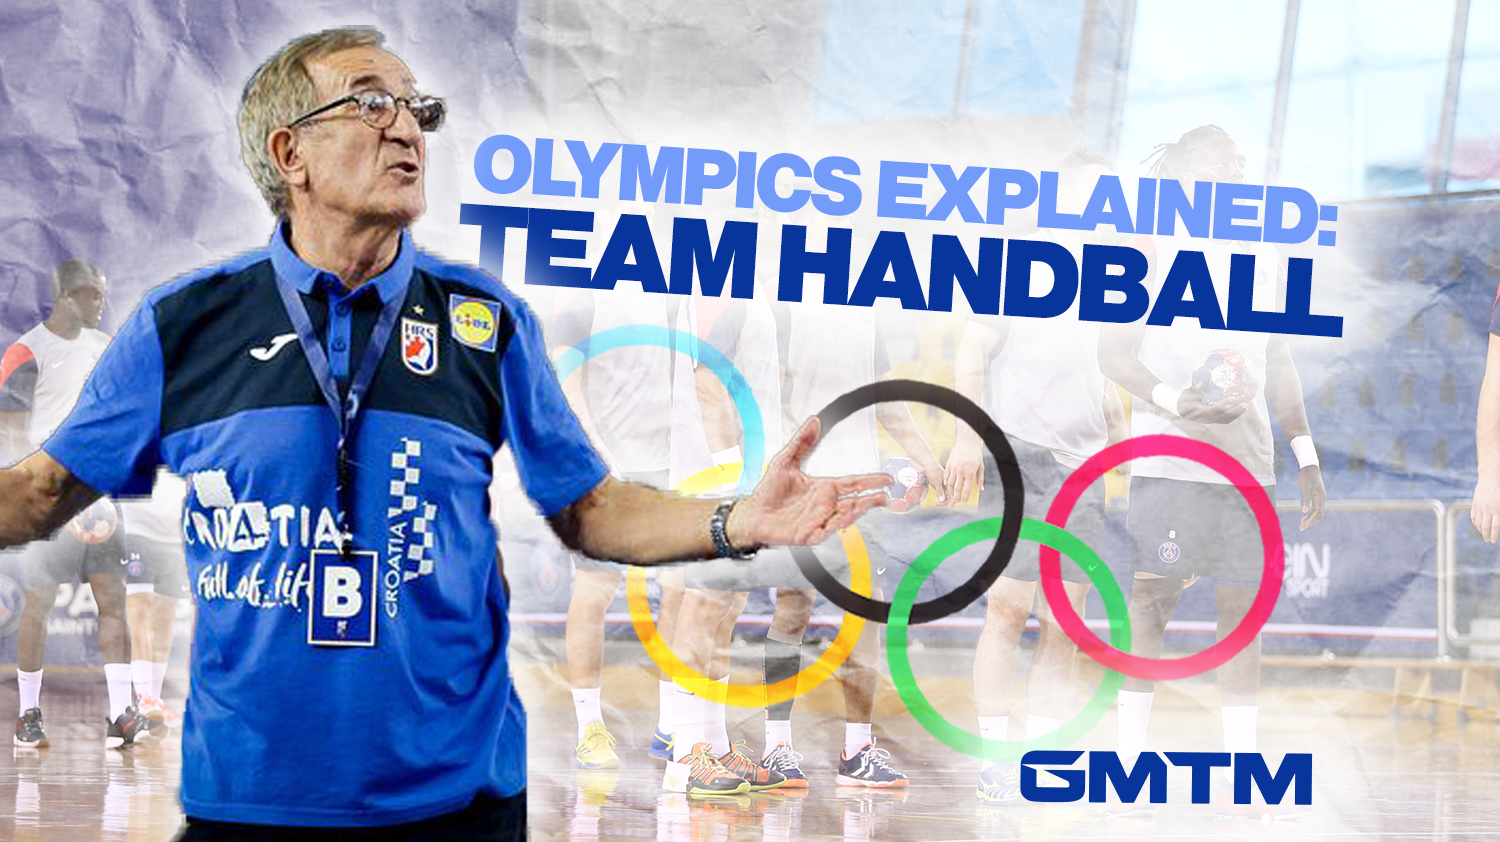 Olympic Sports Explained: What is Team Handball?